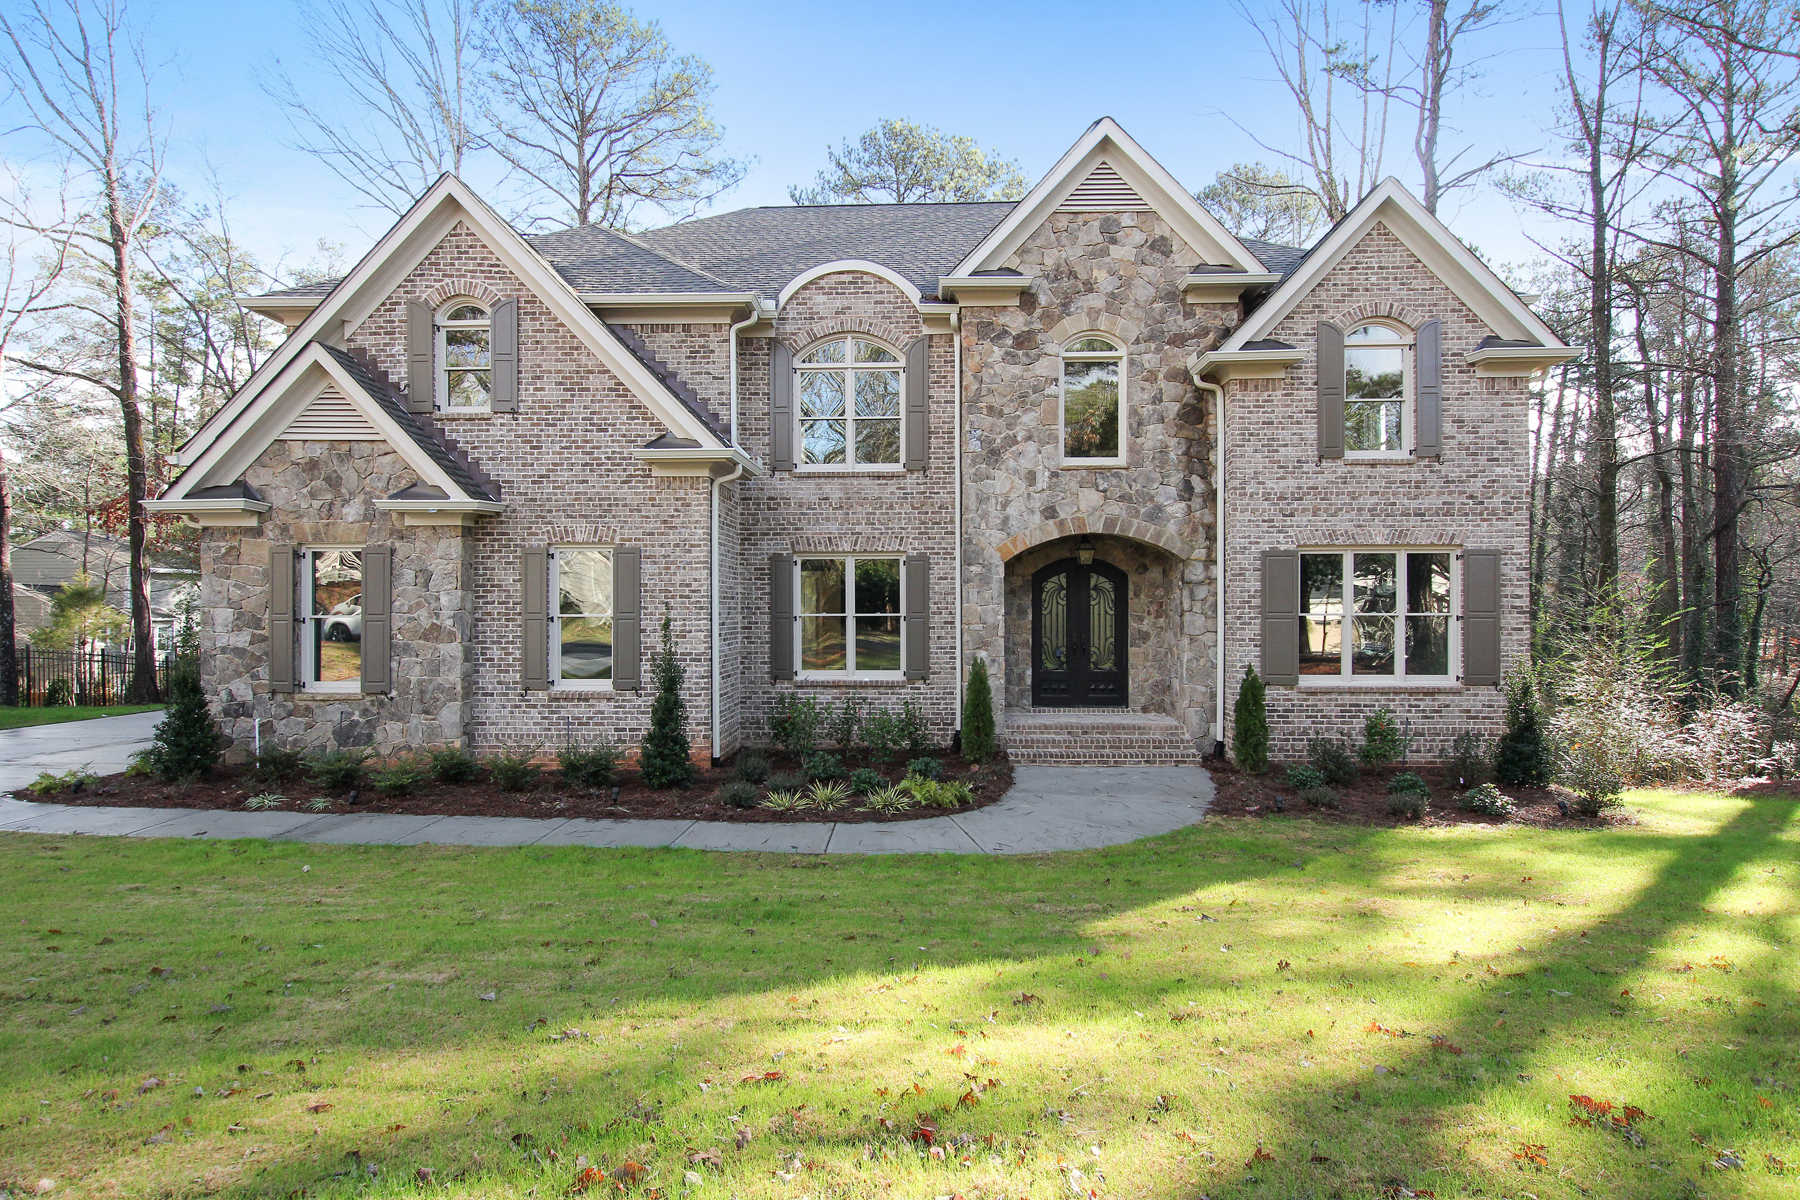 Villa per Vendita alle ore New Construction Luxury Home, Convenient and Top Schools 1791 Greystone Court Marietta, Georgia, 30068 Stati Uniti